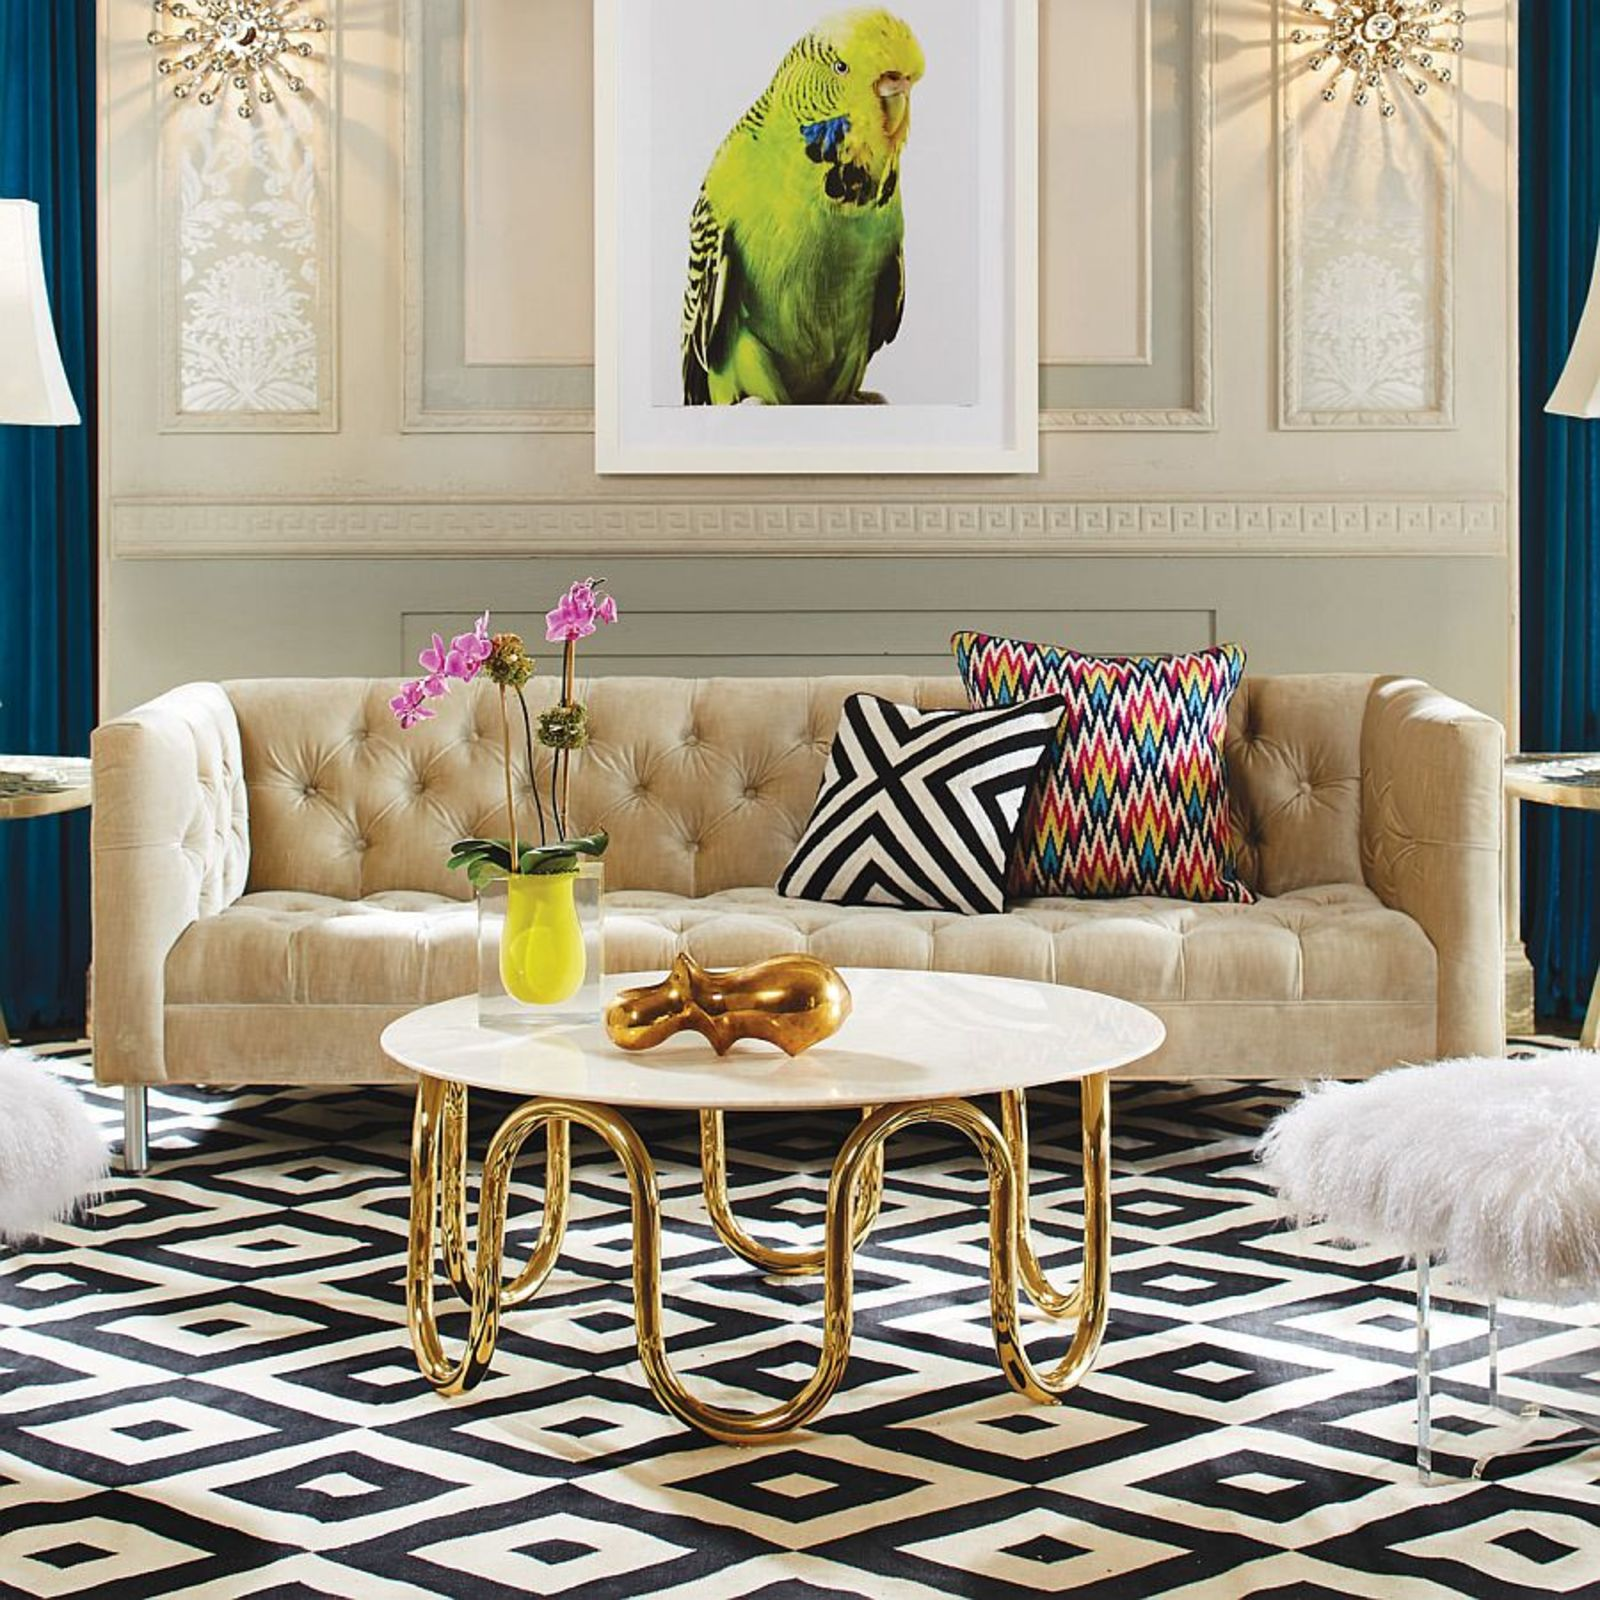 10 Color Trends that will Improve your Living Room Design6 color trends 10 Color Trends that will Improve your Living Room Design 10 Color Trends that will Improve your Living Room Design6